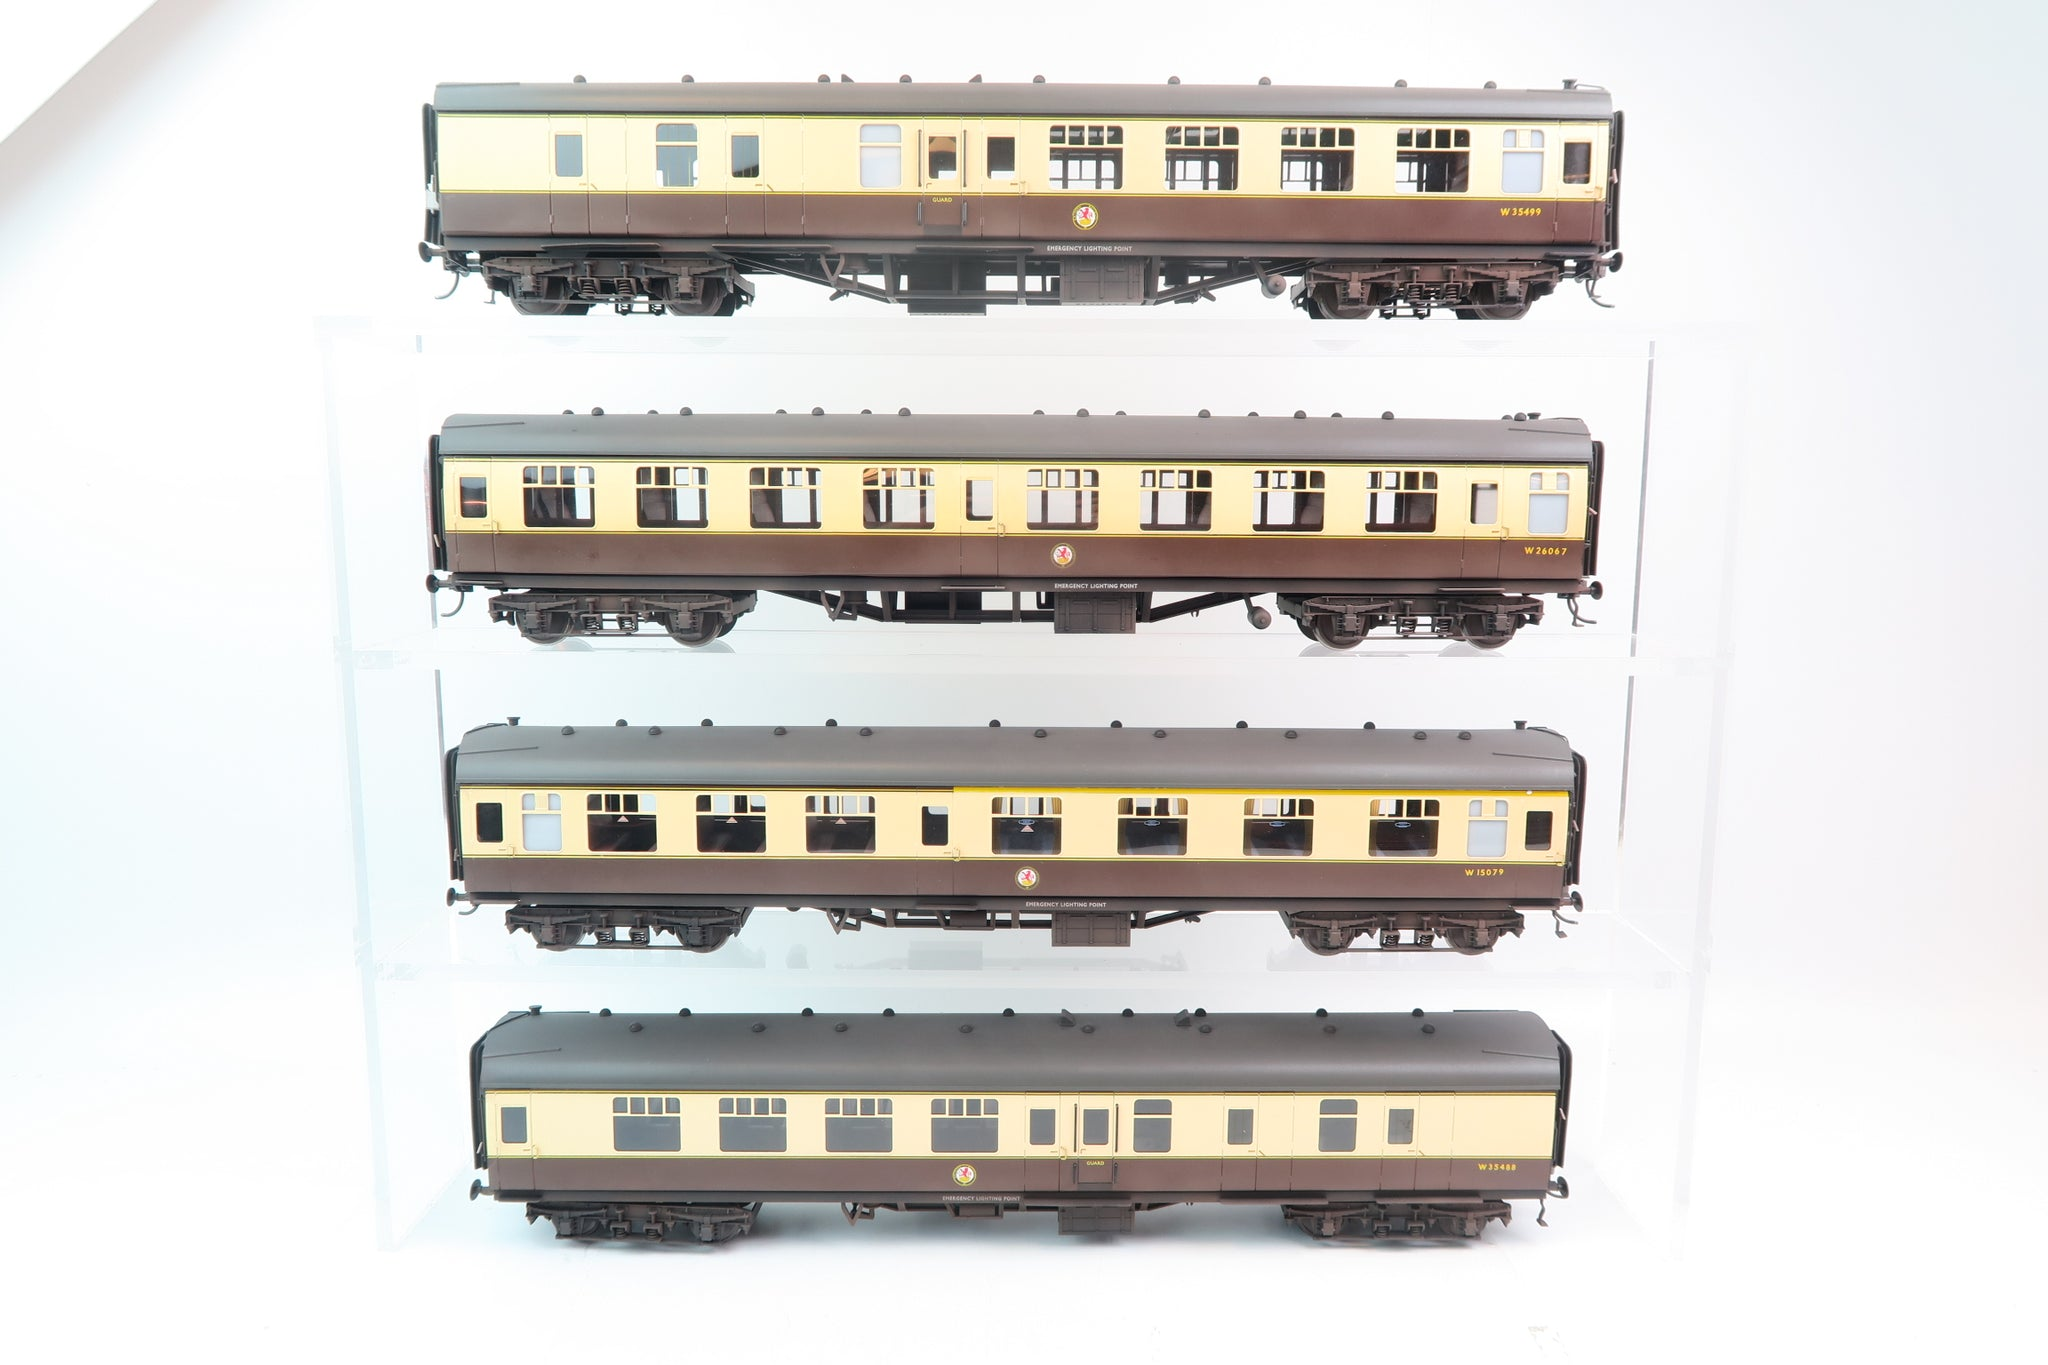 Darstaed 7mm Finescale O Gauge Mk1 Coaches Set A (4 Coaches) Chocolate and Cream, Professionally Weathered & Numbered